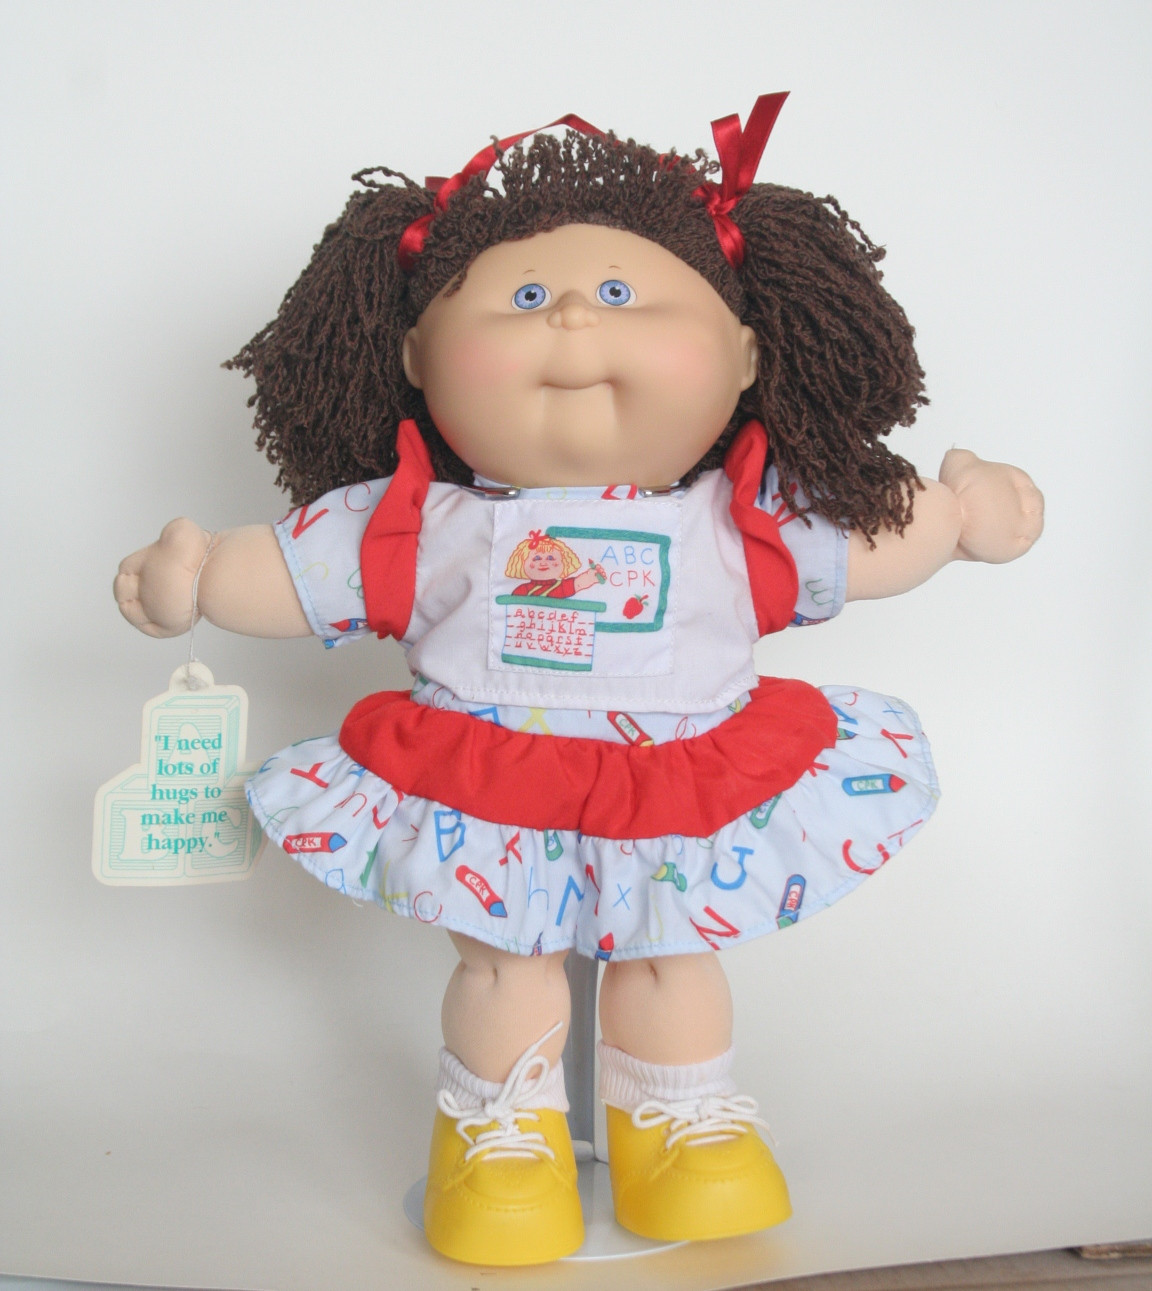 Cabbage Patch Doll Value Unique Blog Archives Bittorrentcyprus Of Contemporary 40 Pictures Cabbage Patch Doll Value